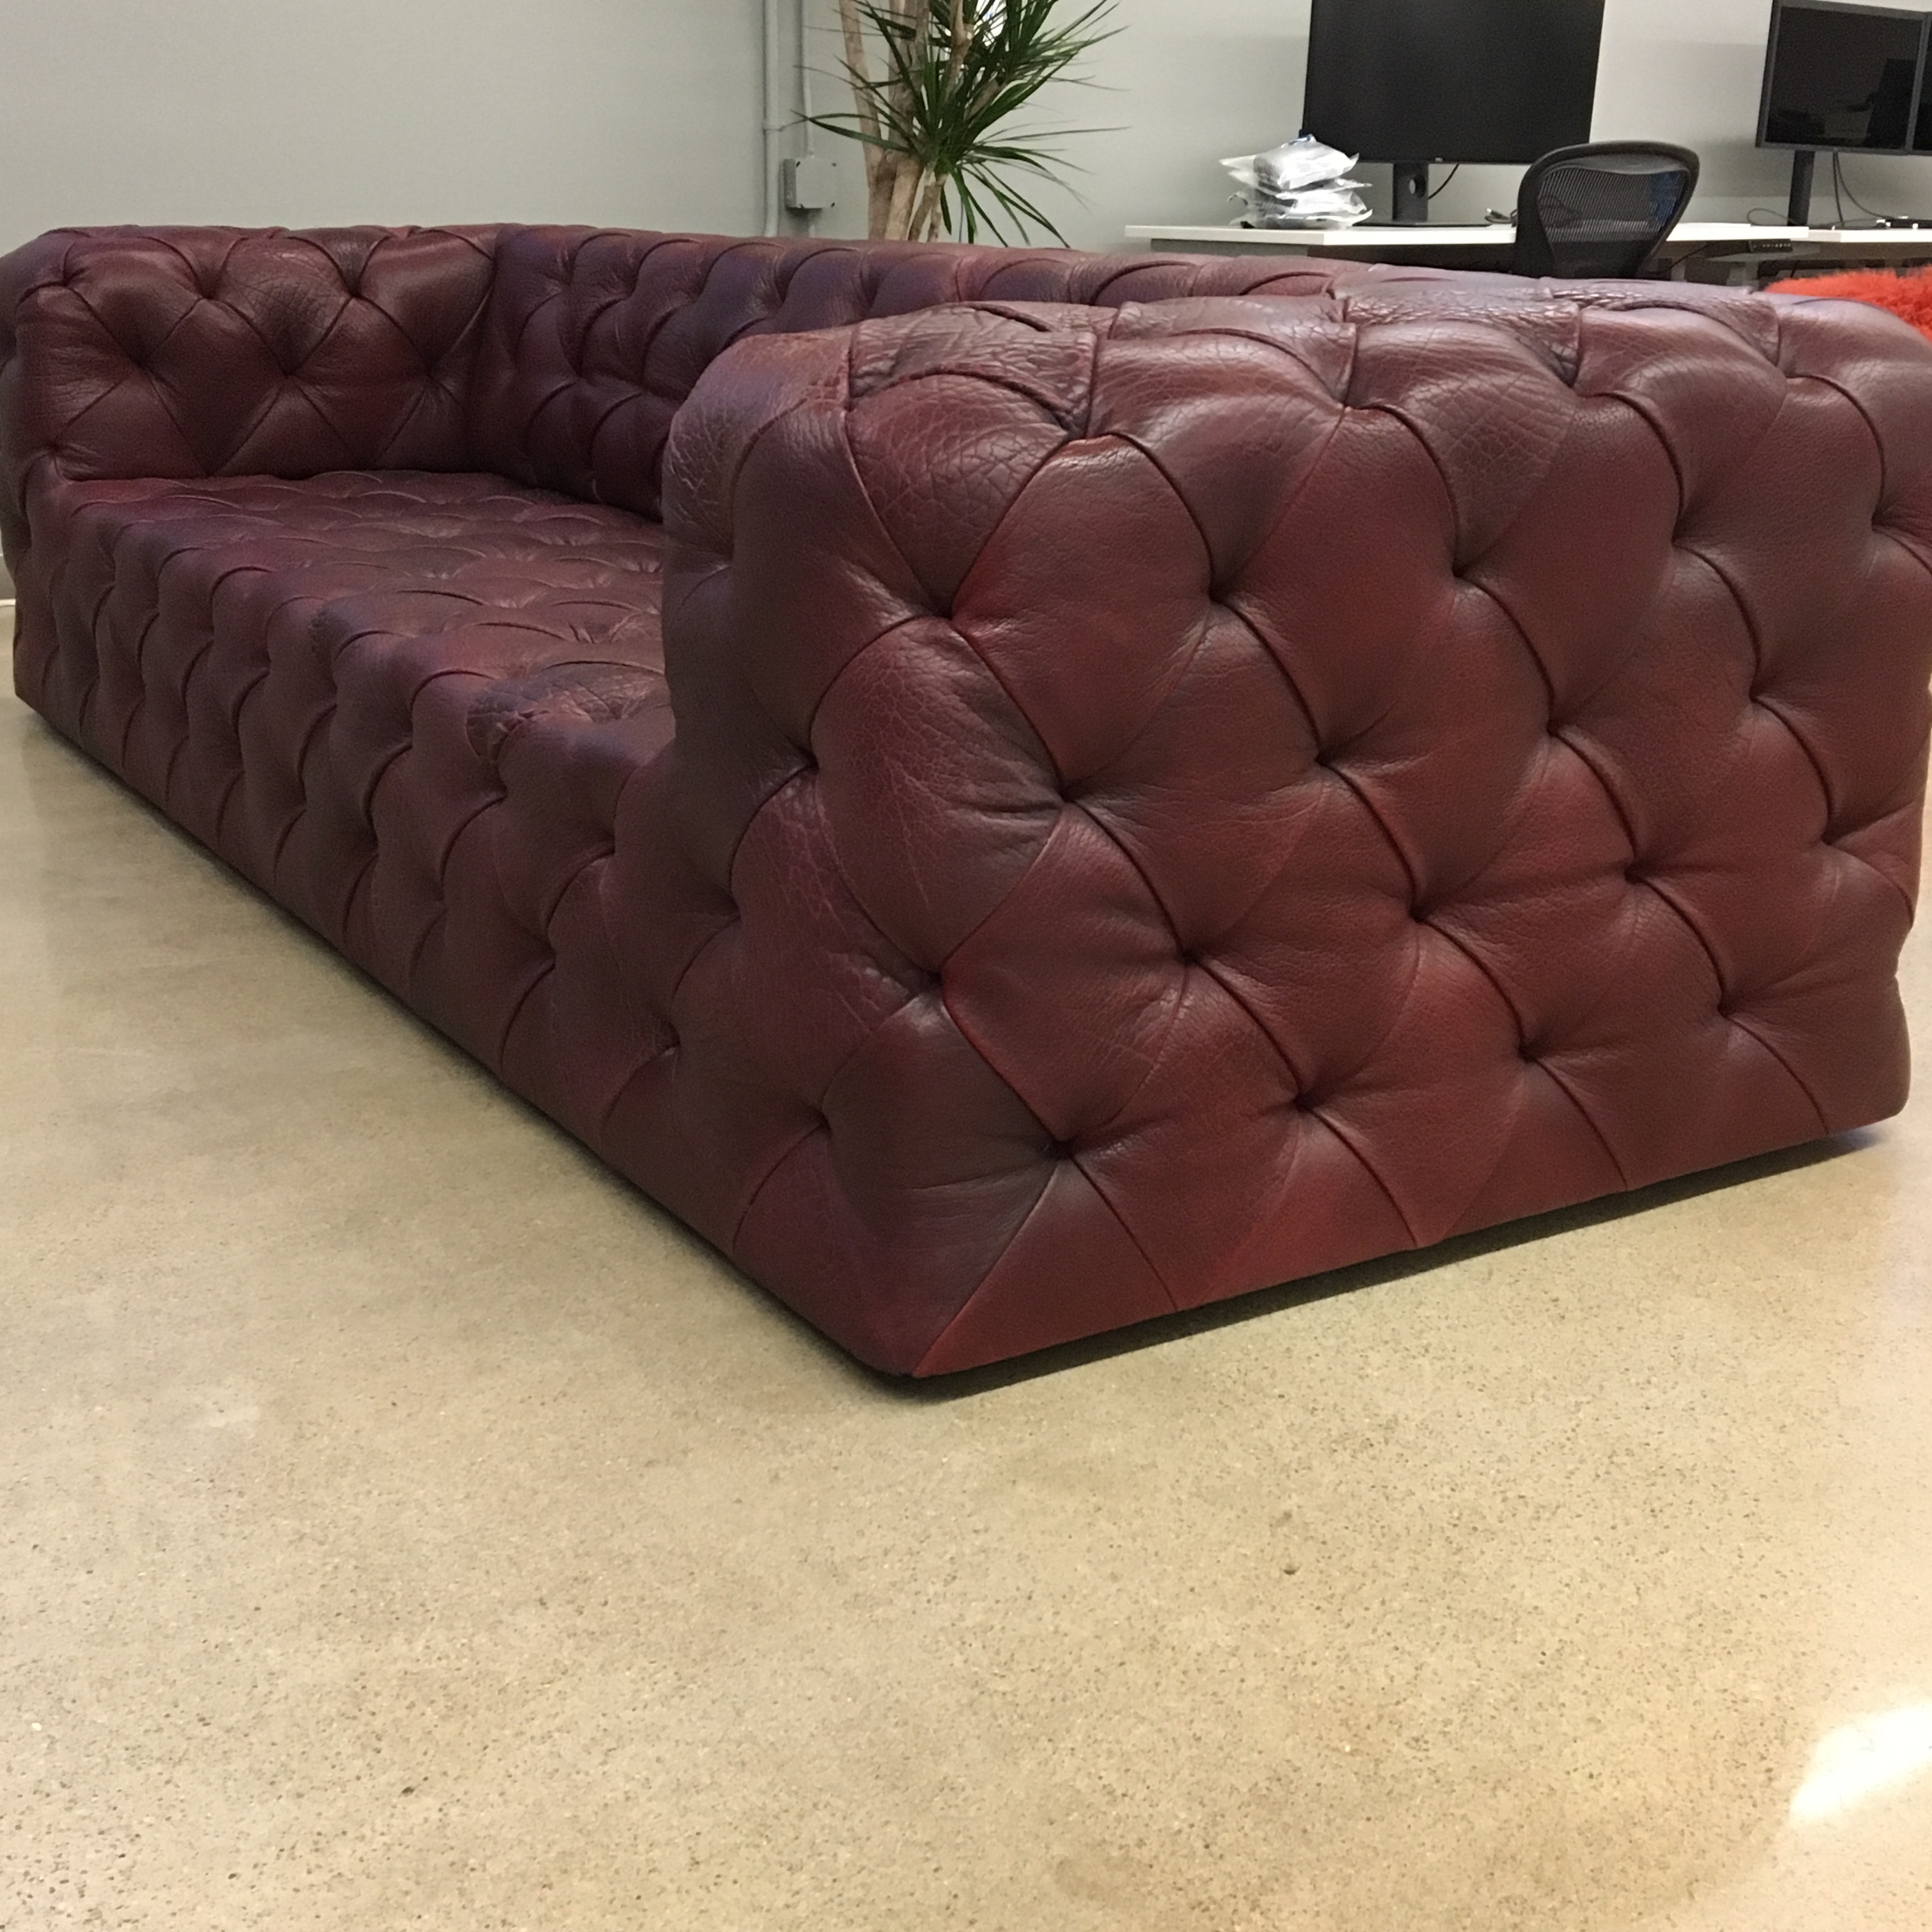 Chesterfield Sofa Chesterfield Sofa Parabellum